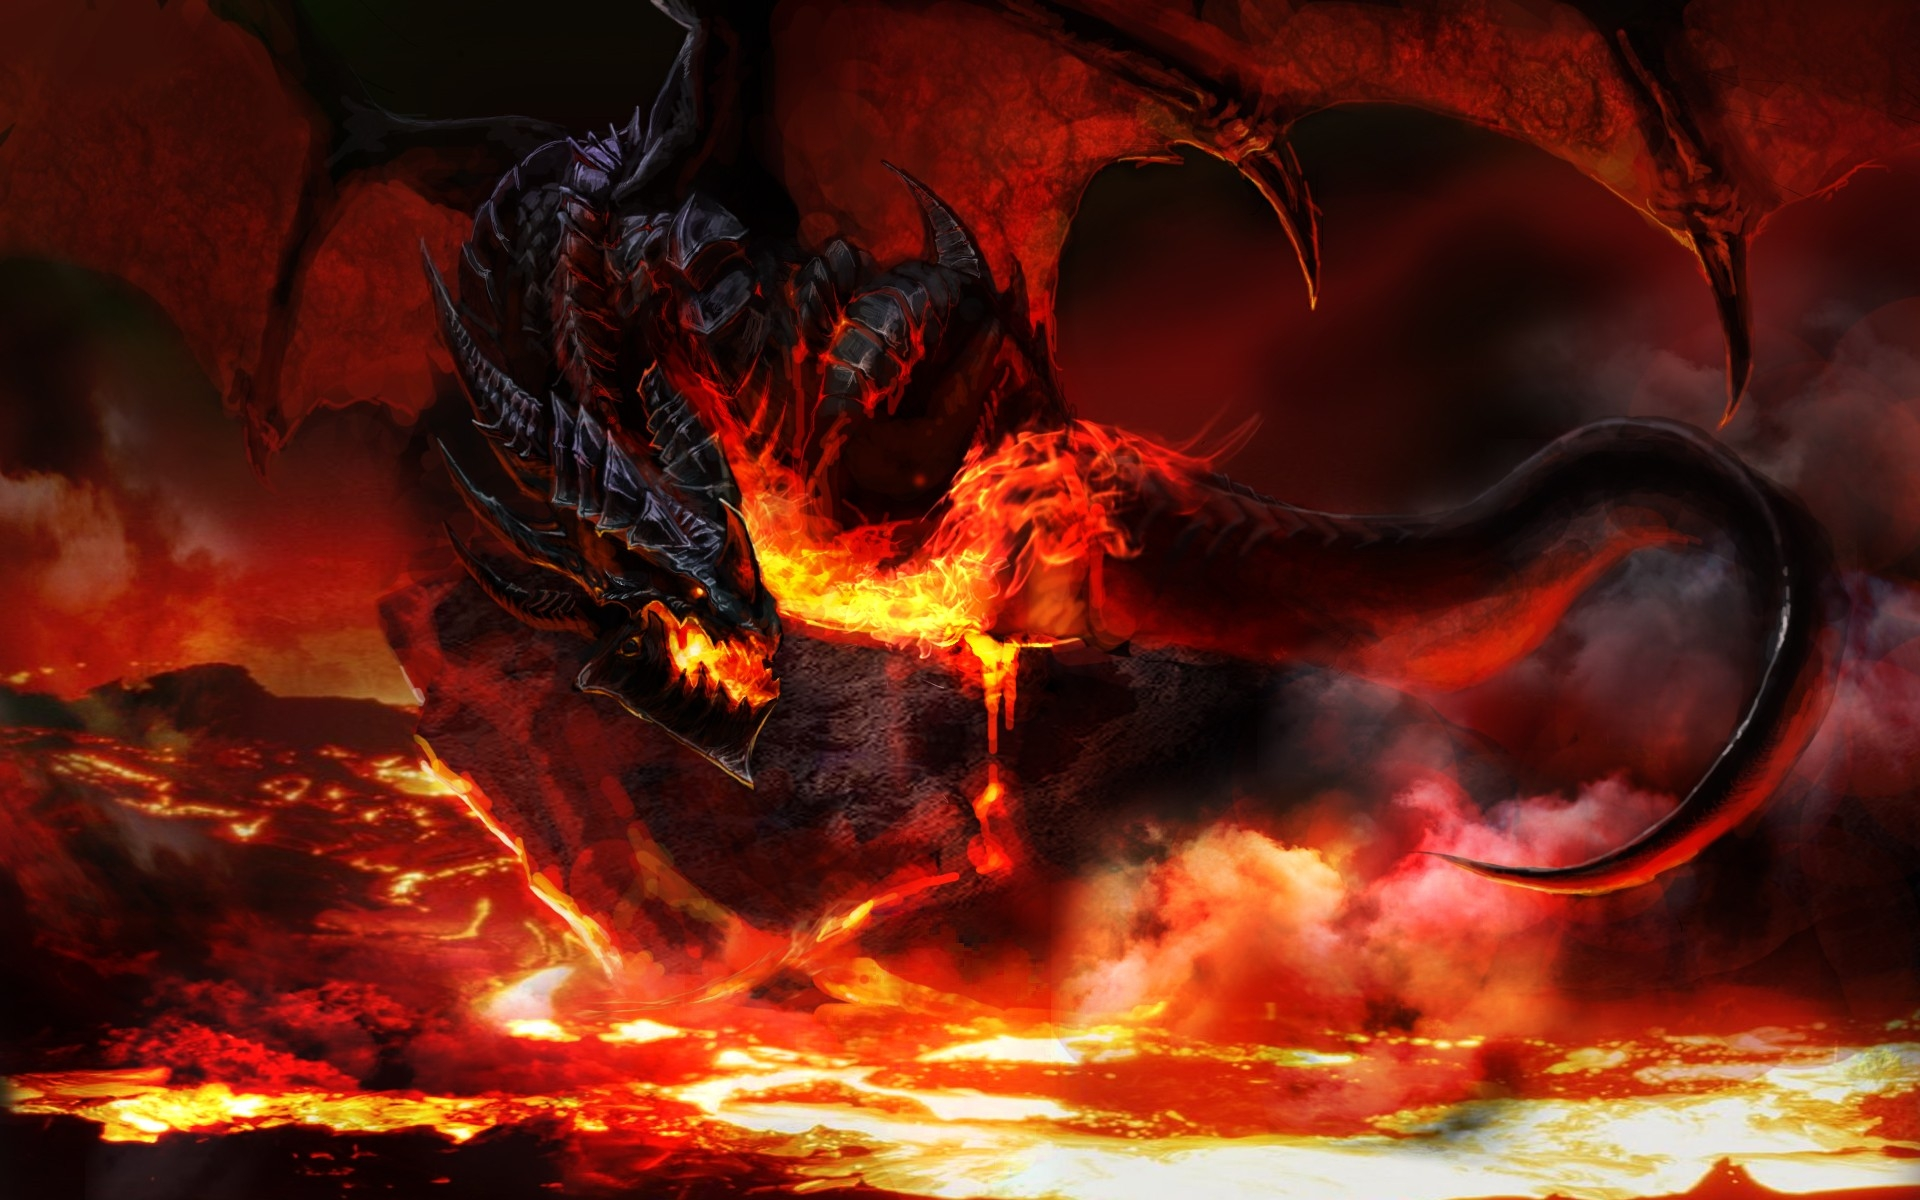 Dragon Wallpapers HD  Fantasy  Android Apps on Google Play 1920x1200